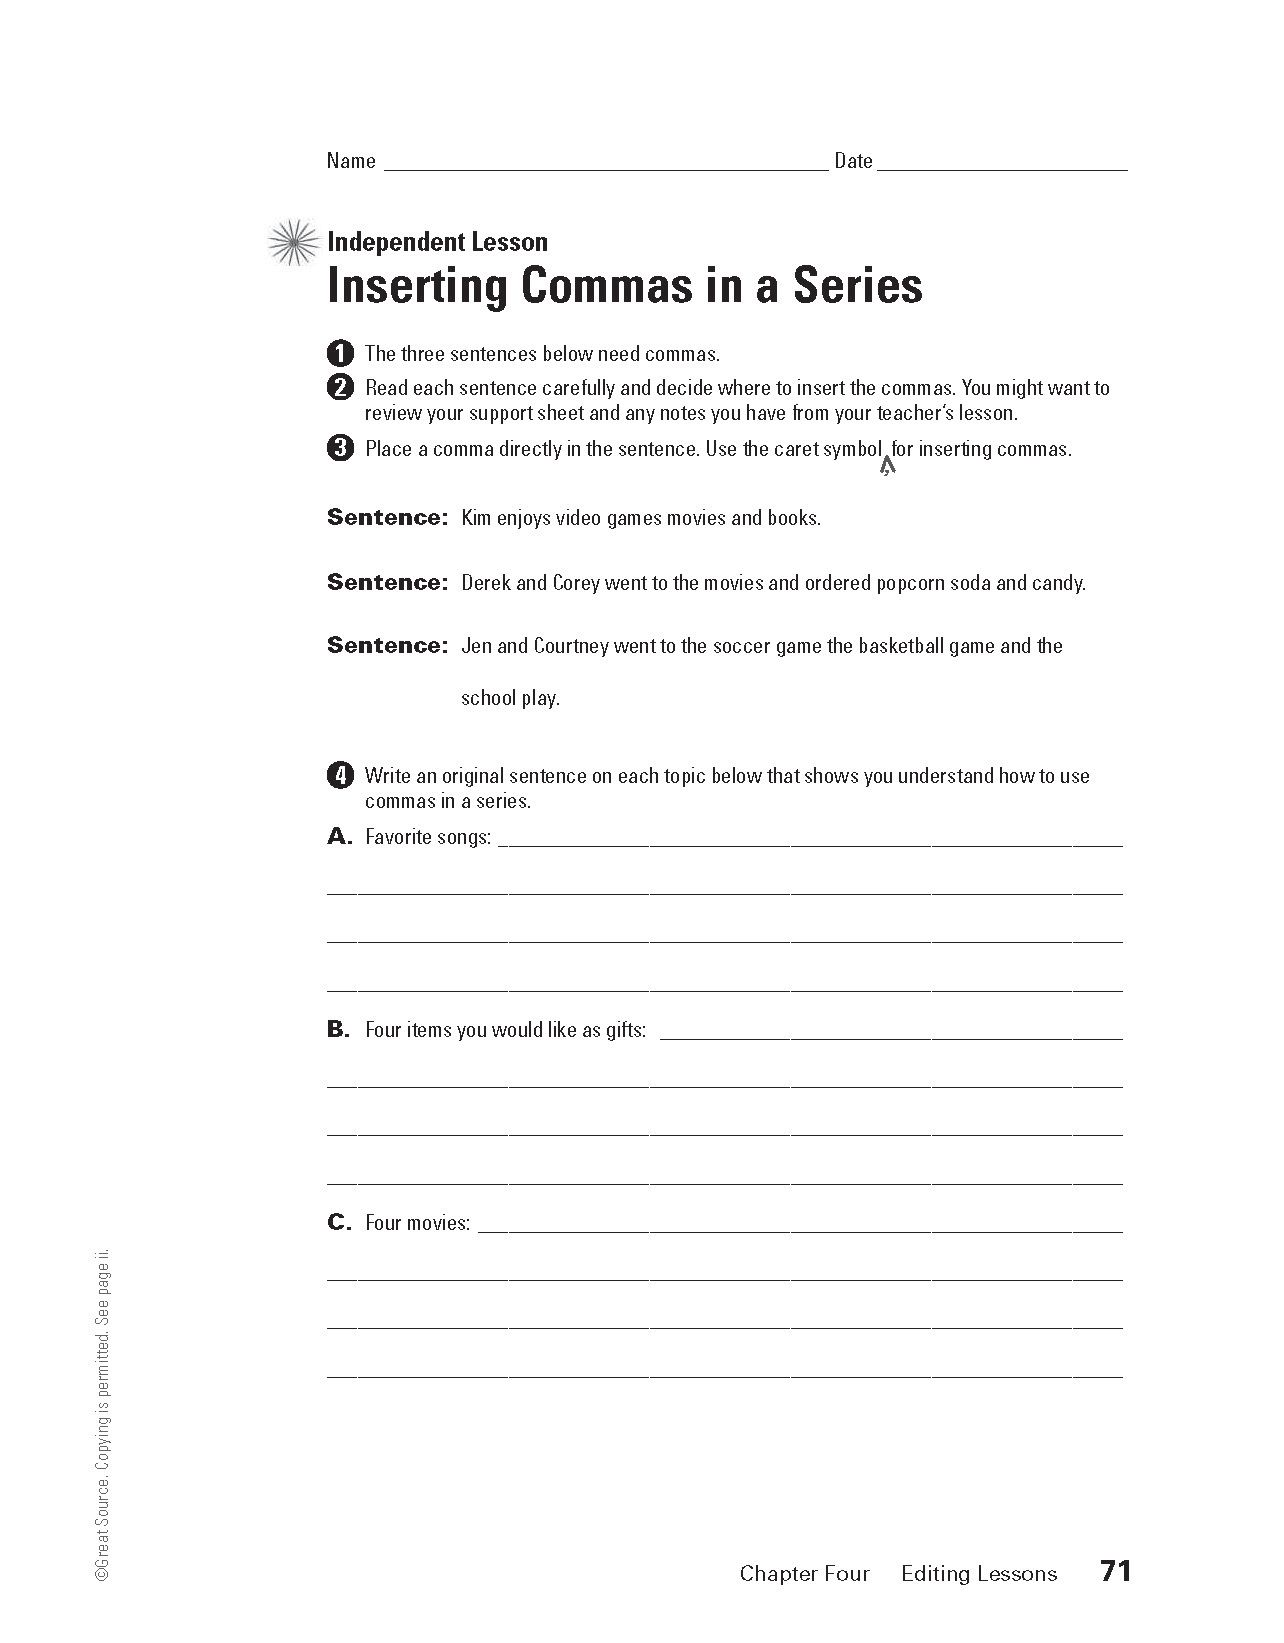 Inserting Commas In A Series Grades 6 8 Download And Print This Independent Lesson For Inserting Summer School Curriculum Summer School Commas In A Series [ 1643 x 1284 Pixel ]